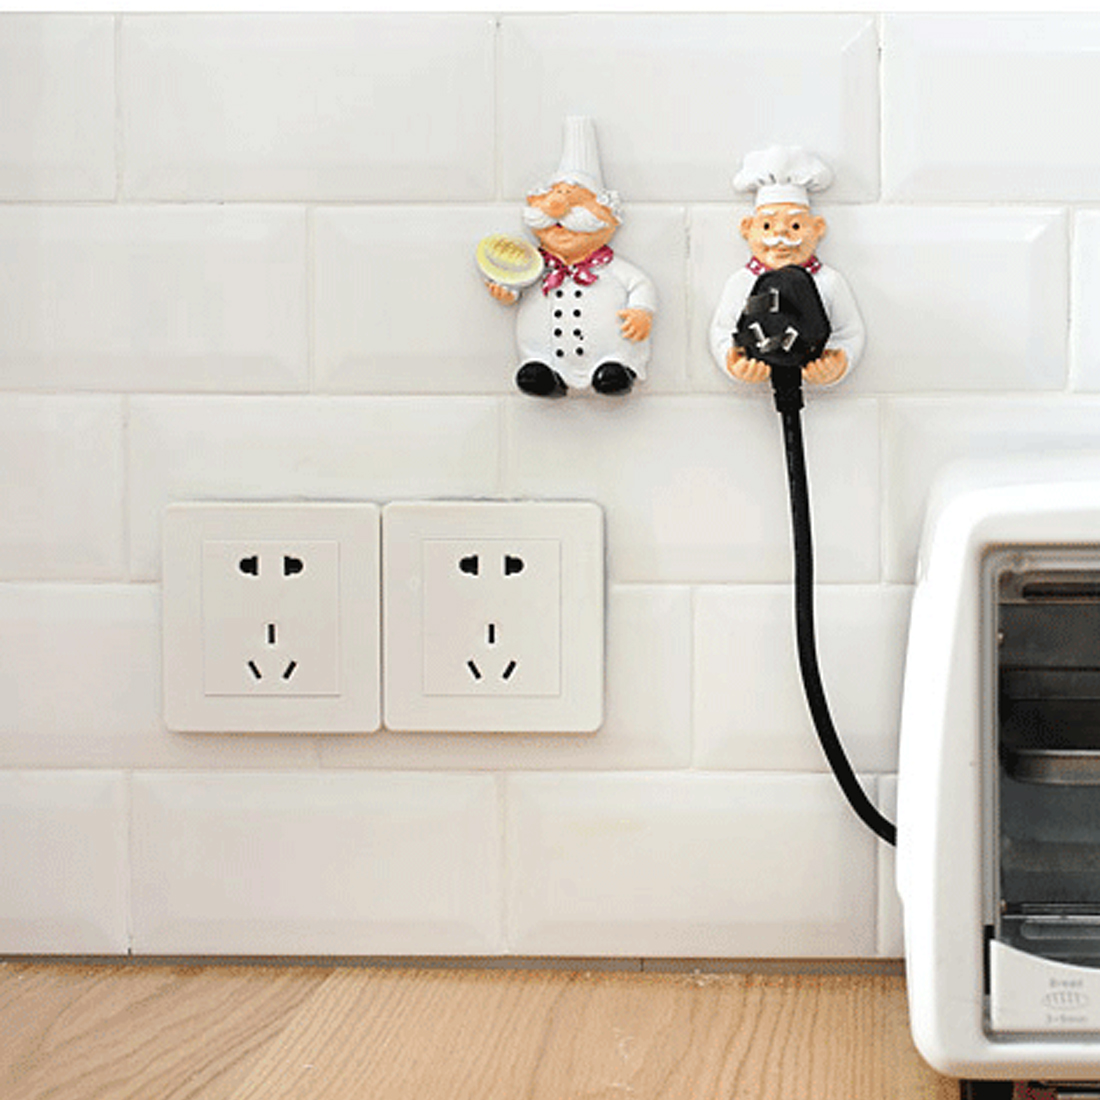 Useful  Cook Design Storage Shelf Holder Power Plug Holders Rack Socket Wall Mounted Adhesive Hanger Kitchen Accessories